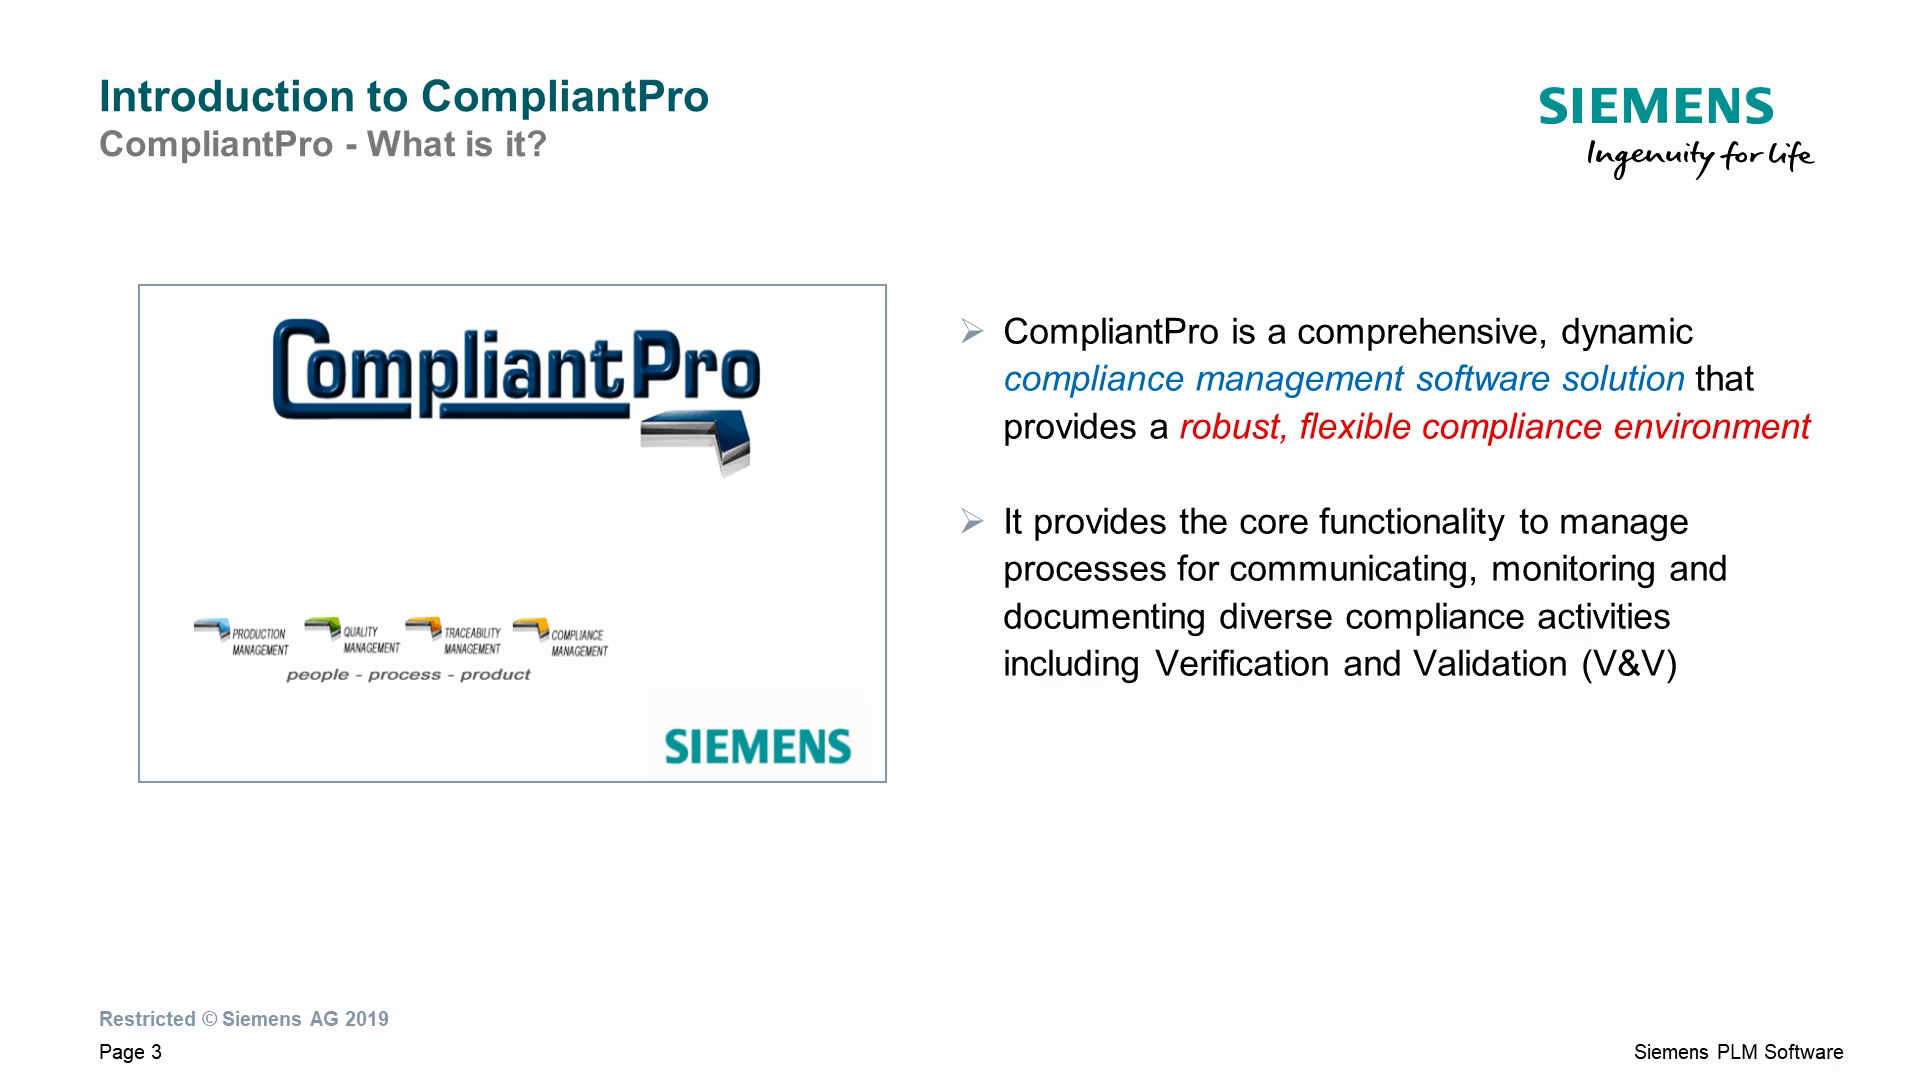 Introduction to CompliantPro cover image